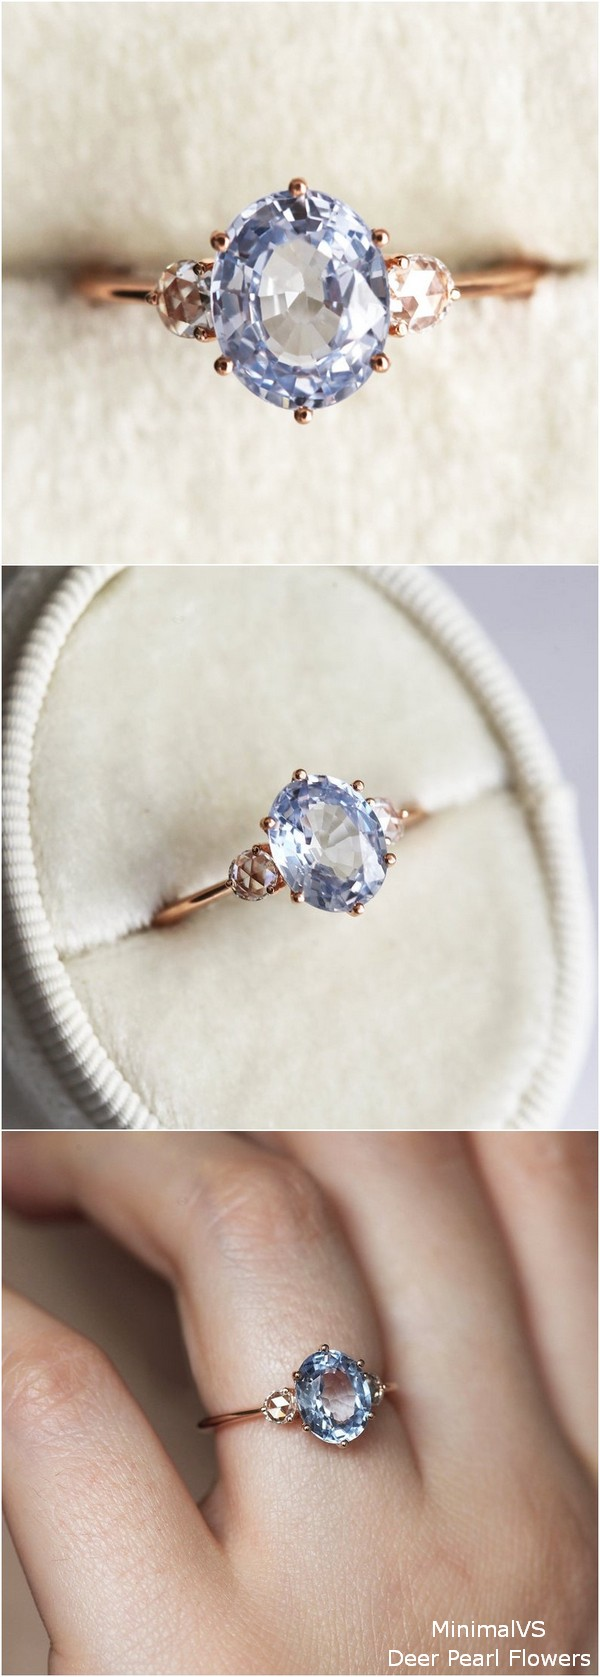 Blue Sapphire Engagement Ring with Rose Cut Diamonds